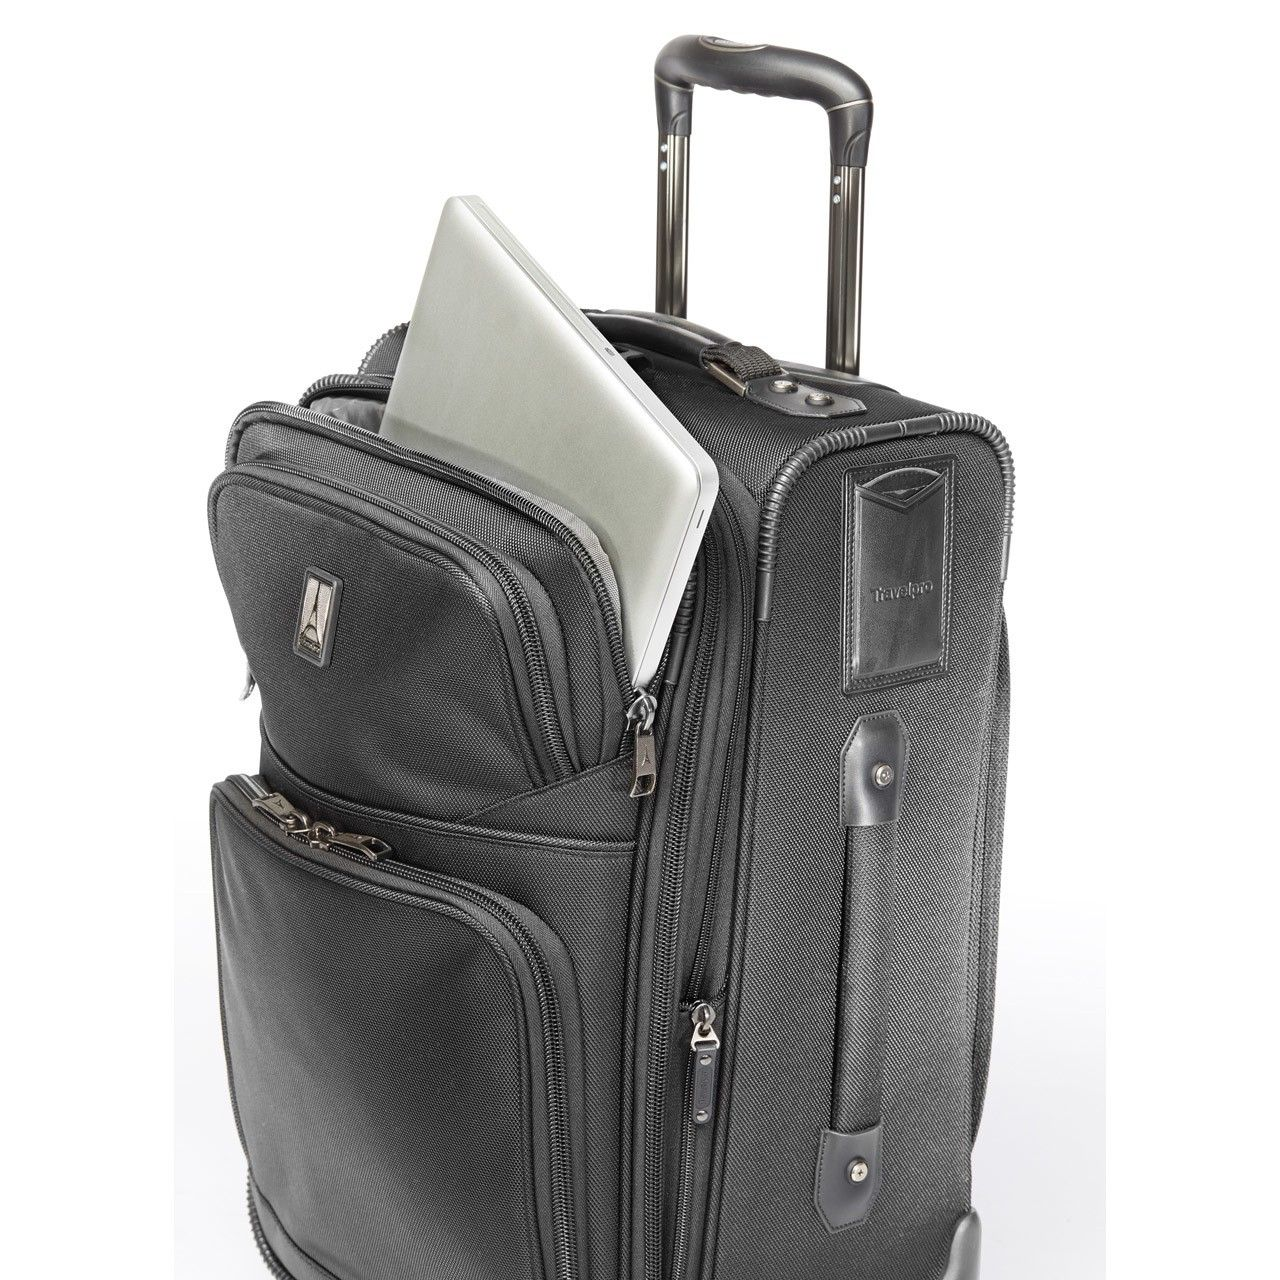 Travelpro Flightcrew5 18 Expandable Rollaboard Bag